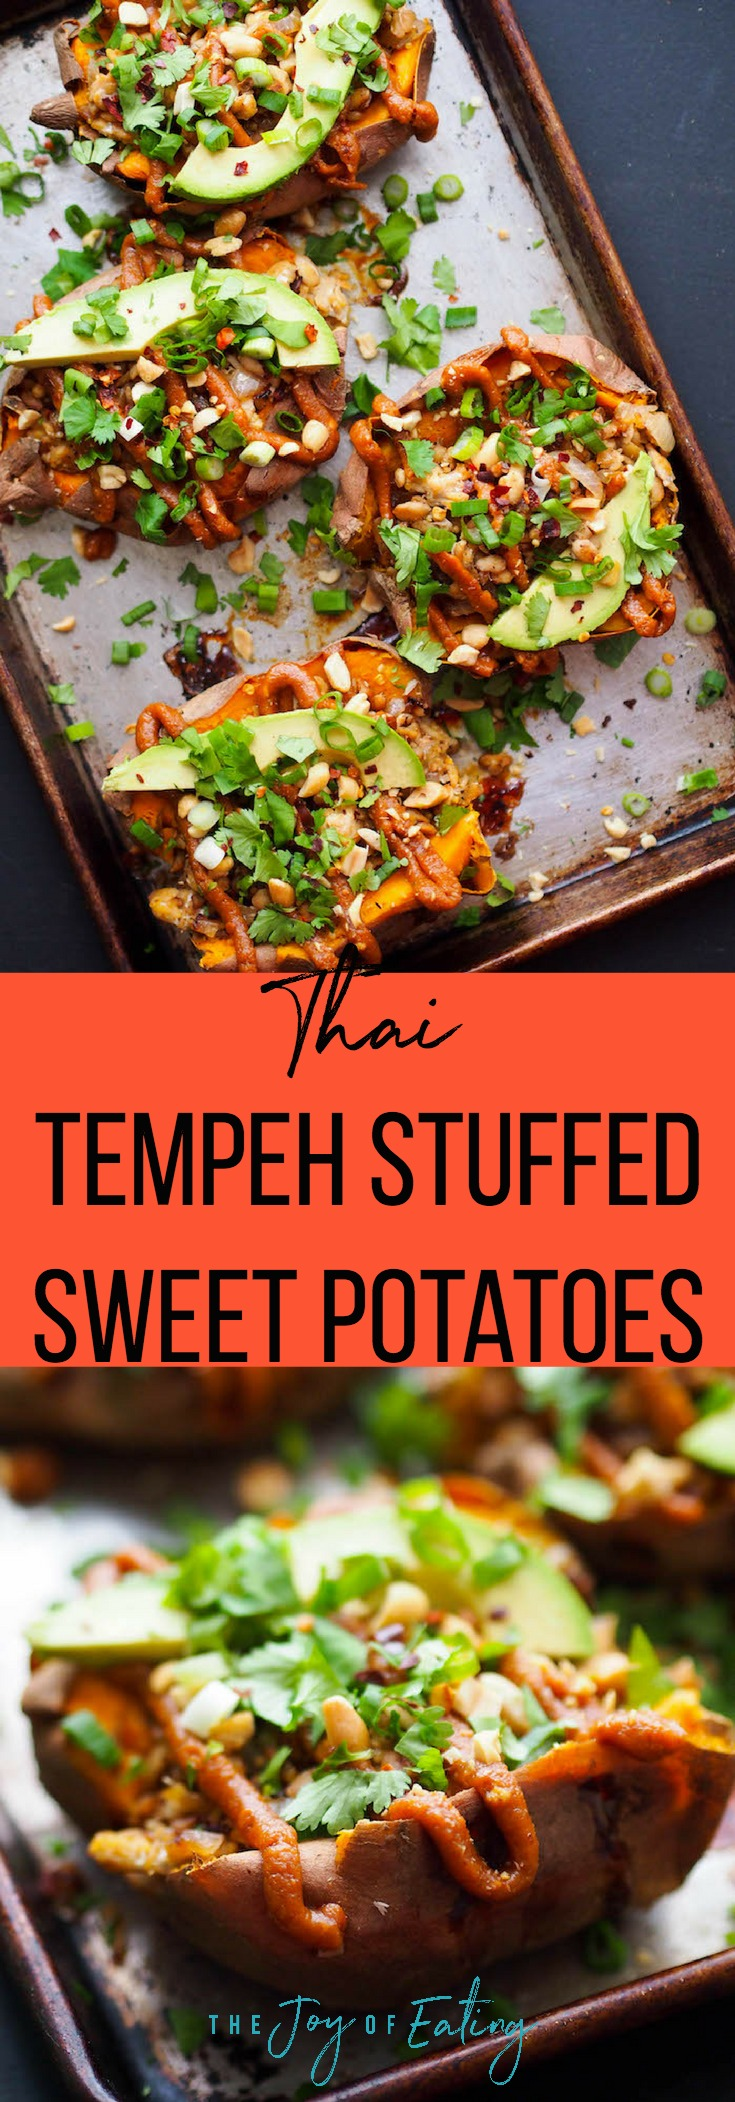 These Thai tempeh stuffed sweet potatoes are filled with spiced crumbled tempeh, avocado, and a spicy peanut sauce! #glutenfree #vegan #vegetarian #sweetpotato #healthyrecipe